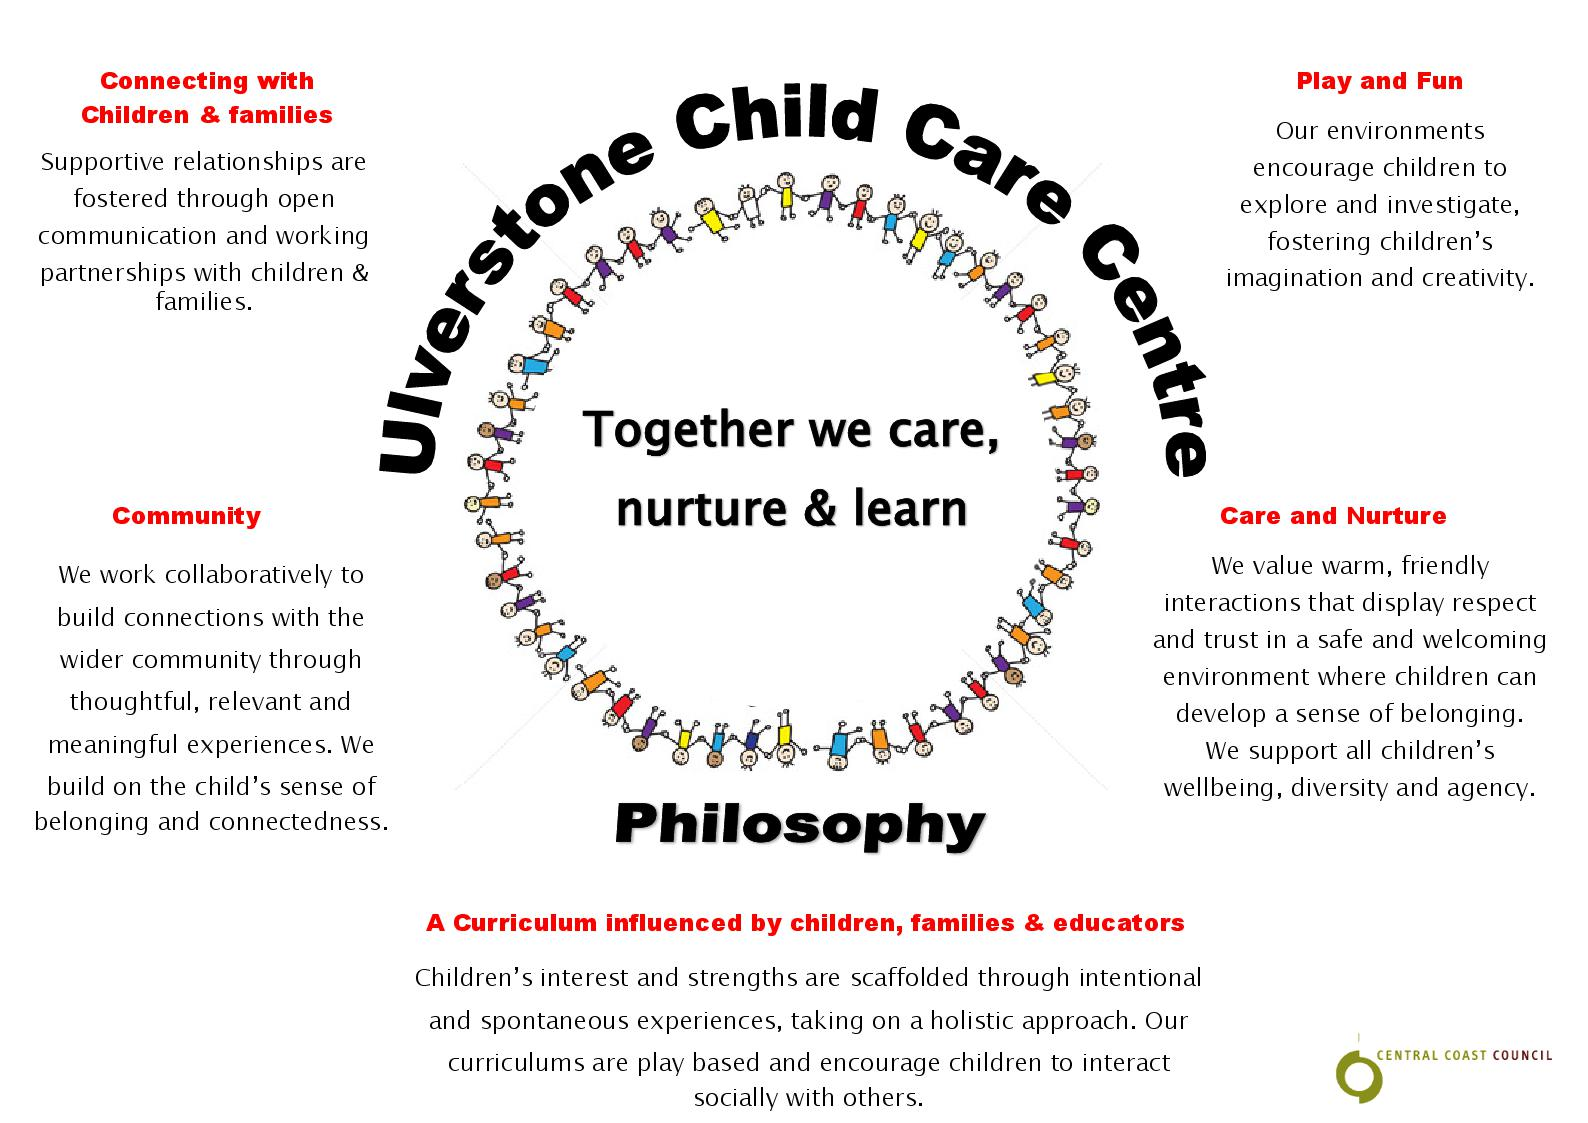 philosophy of a child care center essay Fei and celc provide quality child care in support of working families the philosophy of our child care center provides a basis for the types of activities available for the children and the kind of care they will receive in our center.